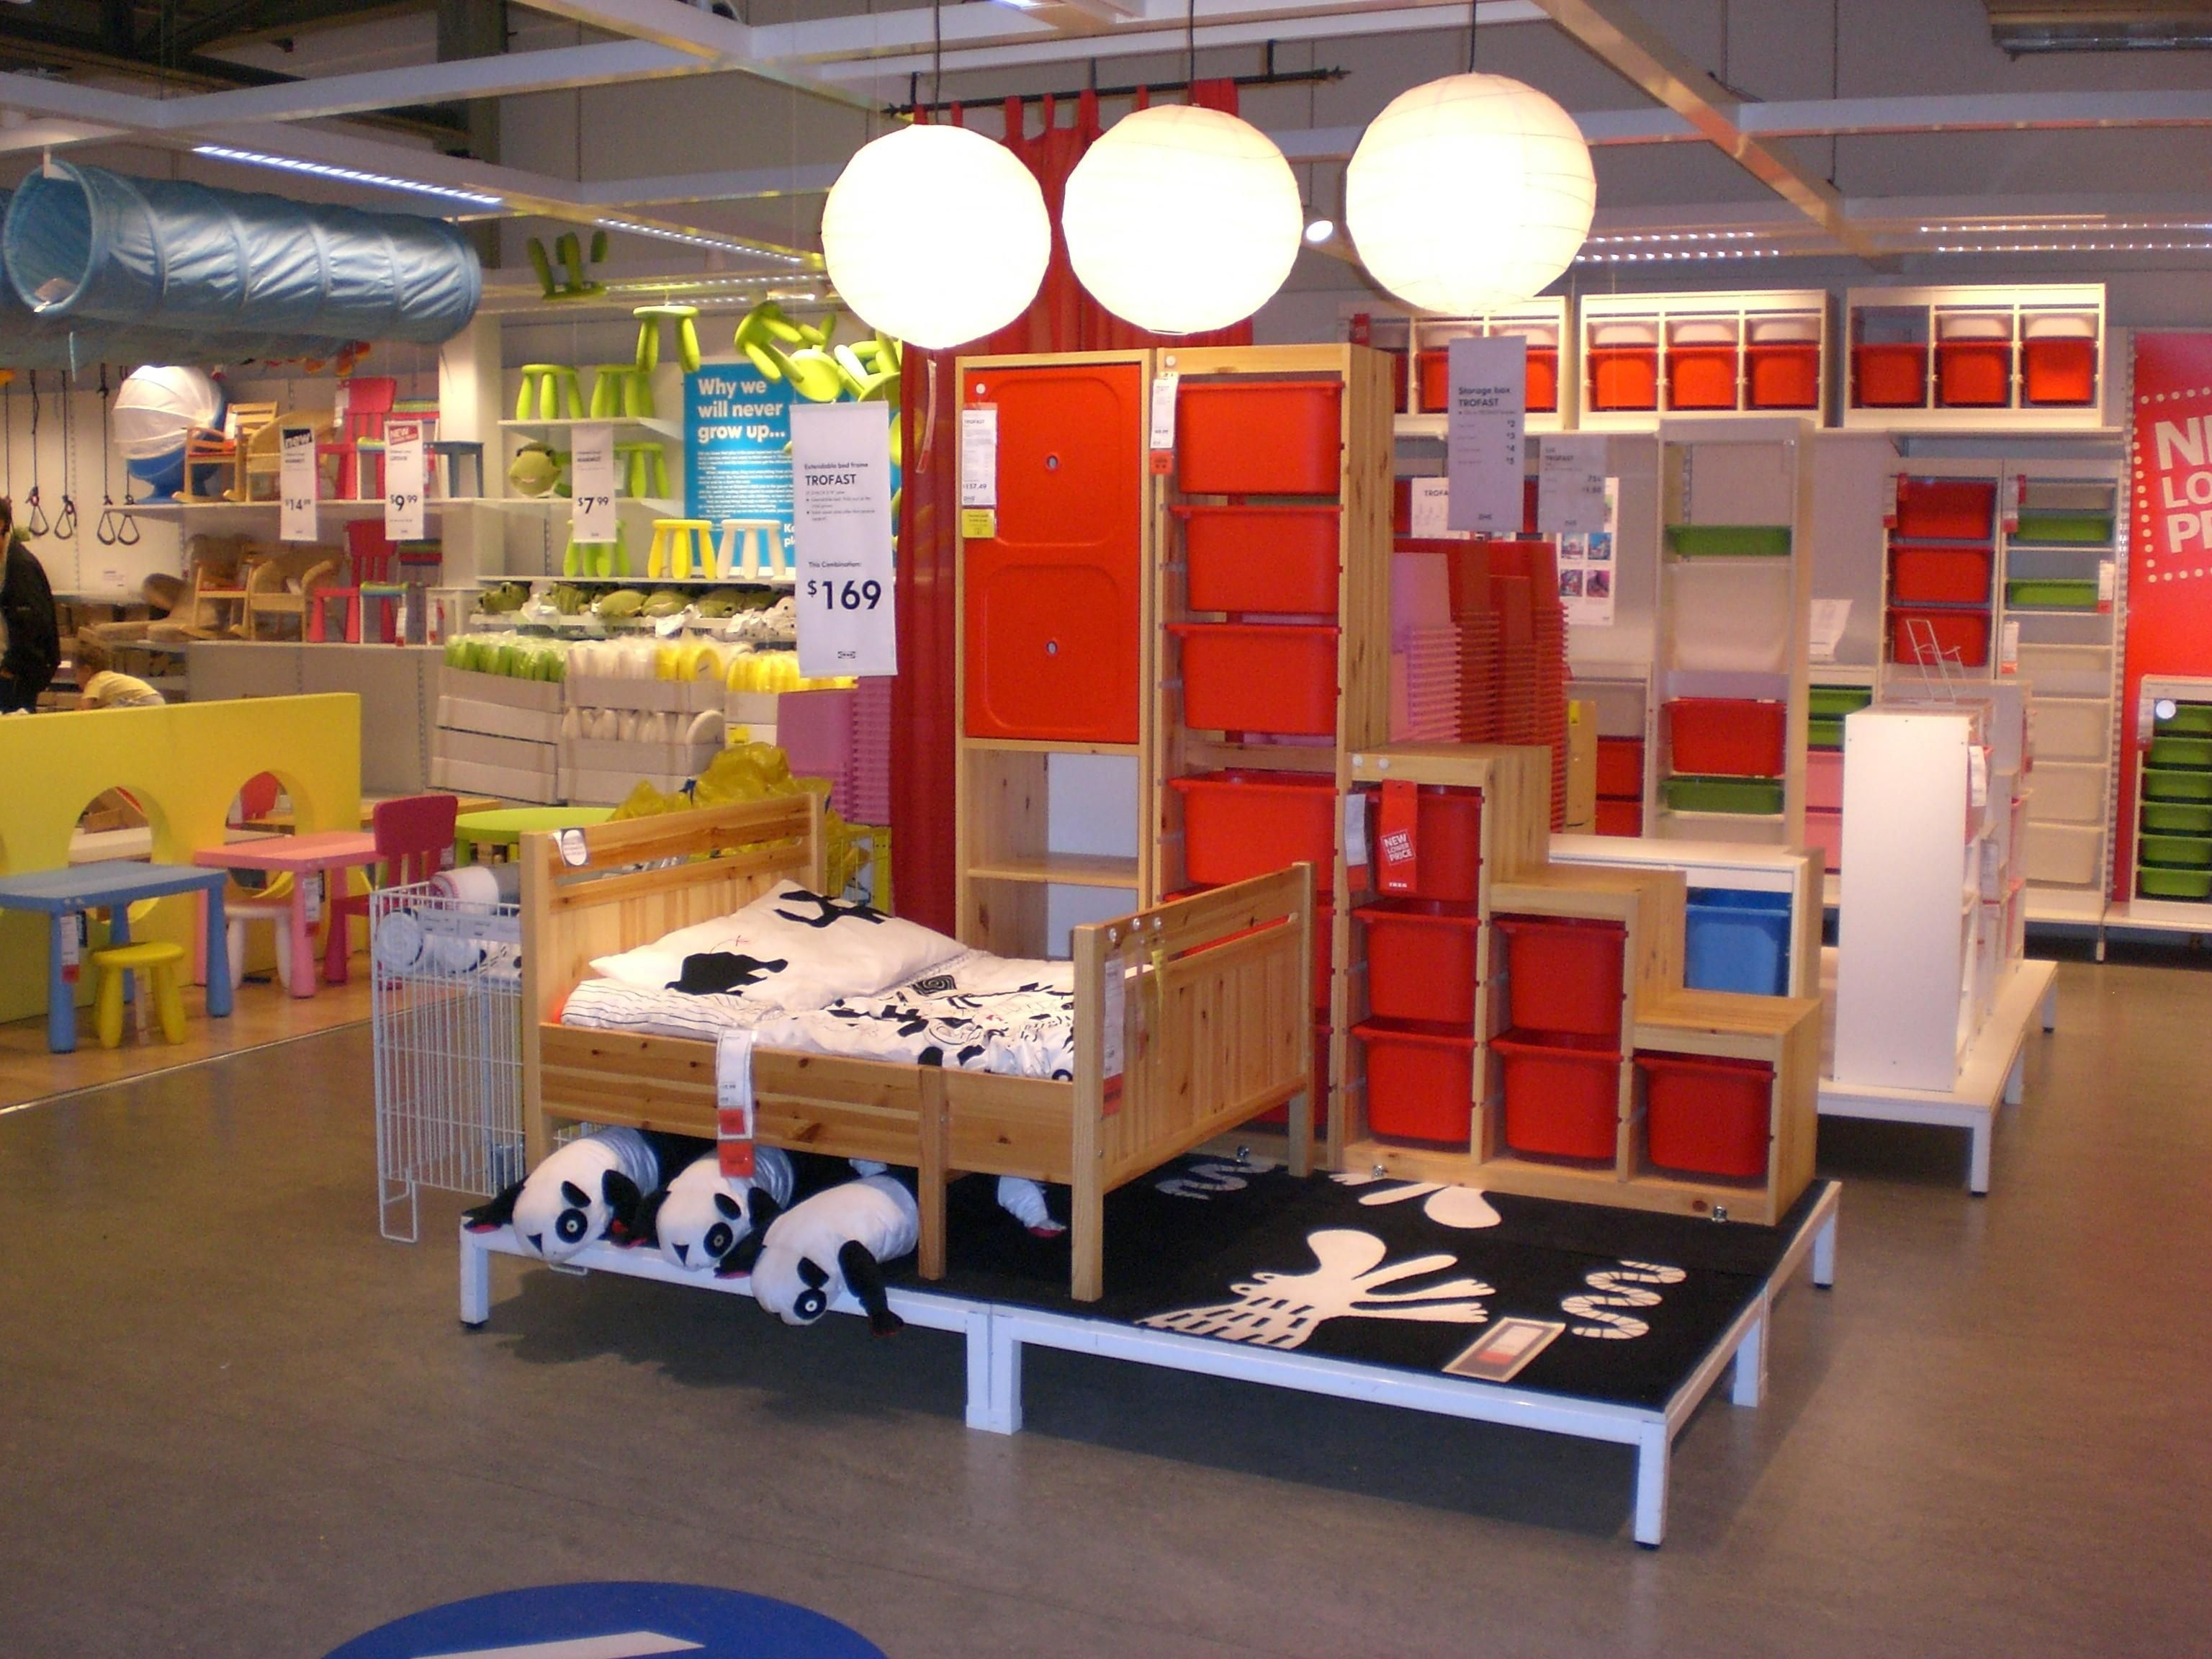 Ikea Furniture Store Editorial Image   Image: 67118140